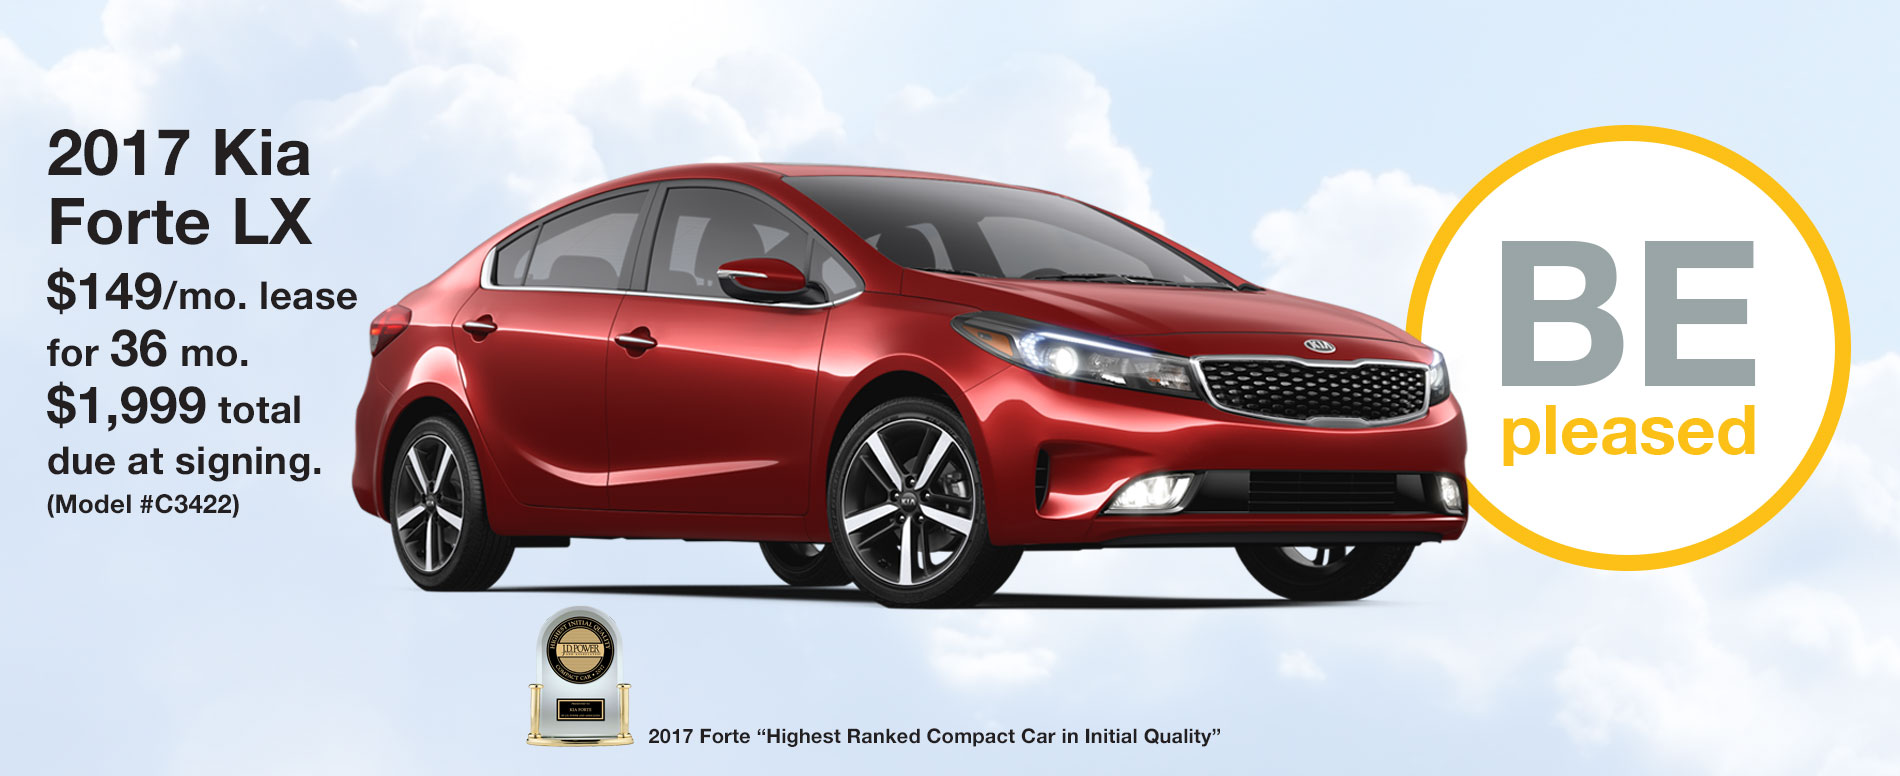 2017 Kia Forte LX Lease $149 per month for 36 months with $1,999 due at signing.